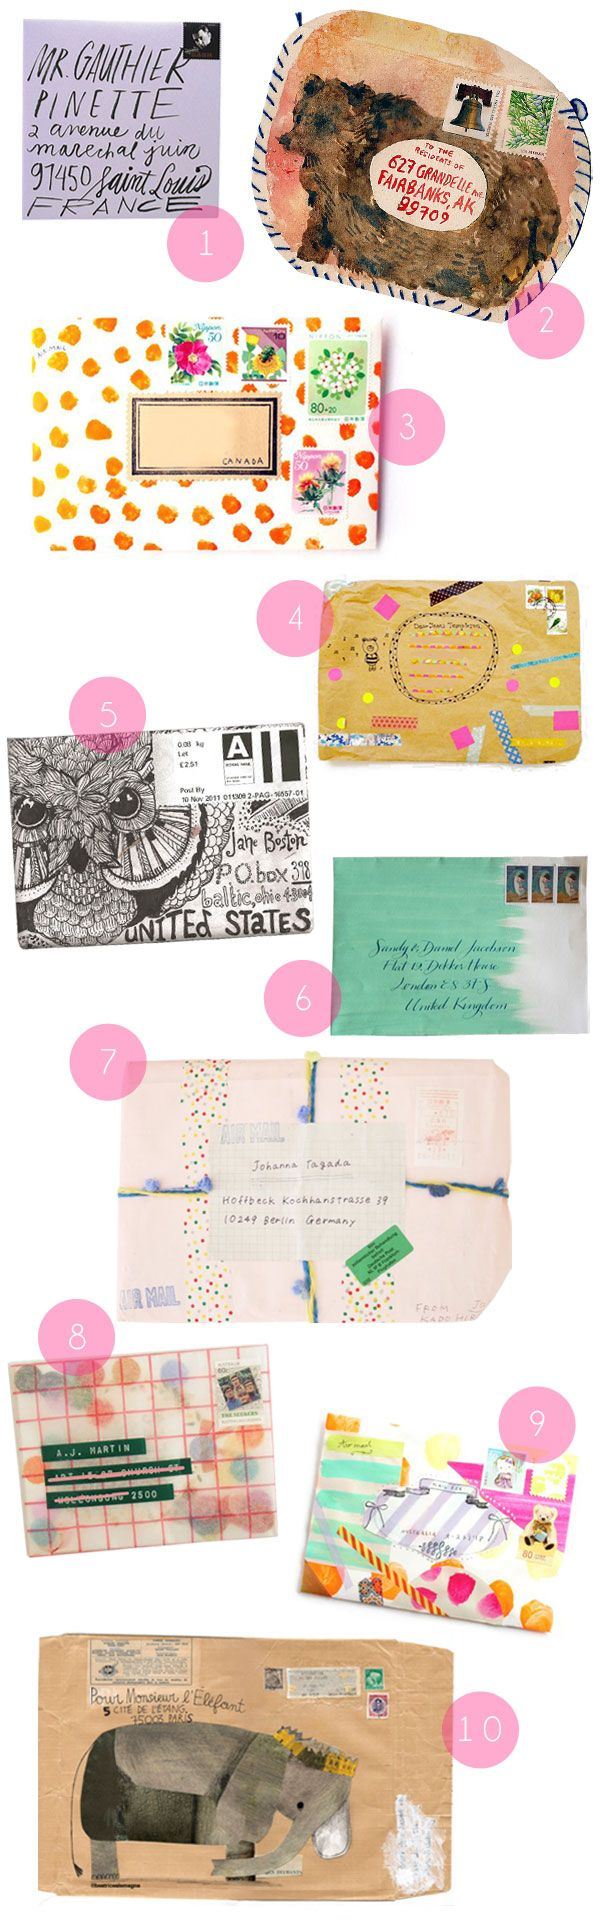 17 best ideas about decorated envelopes on pinterest for Cool envelope ideas